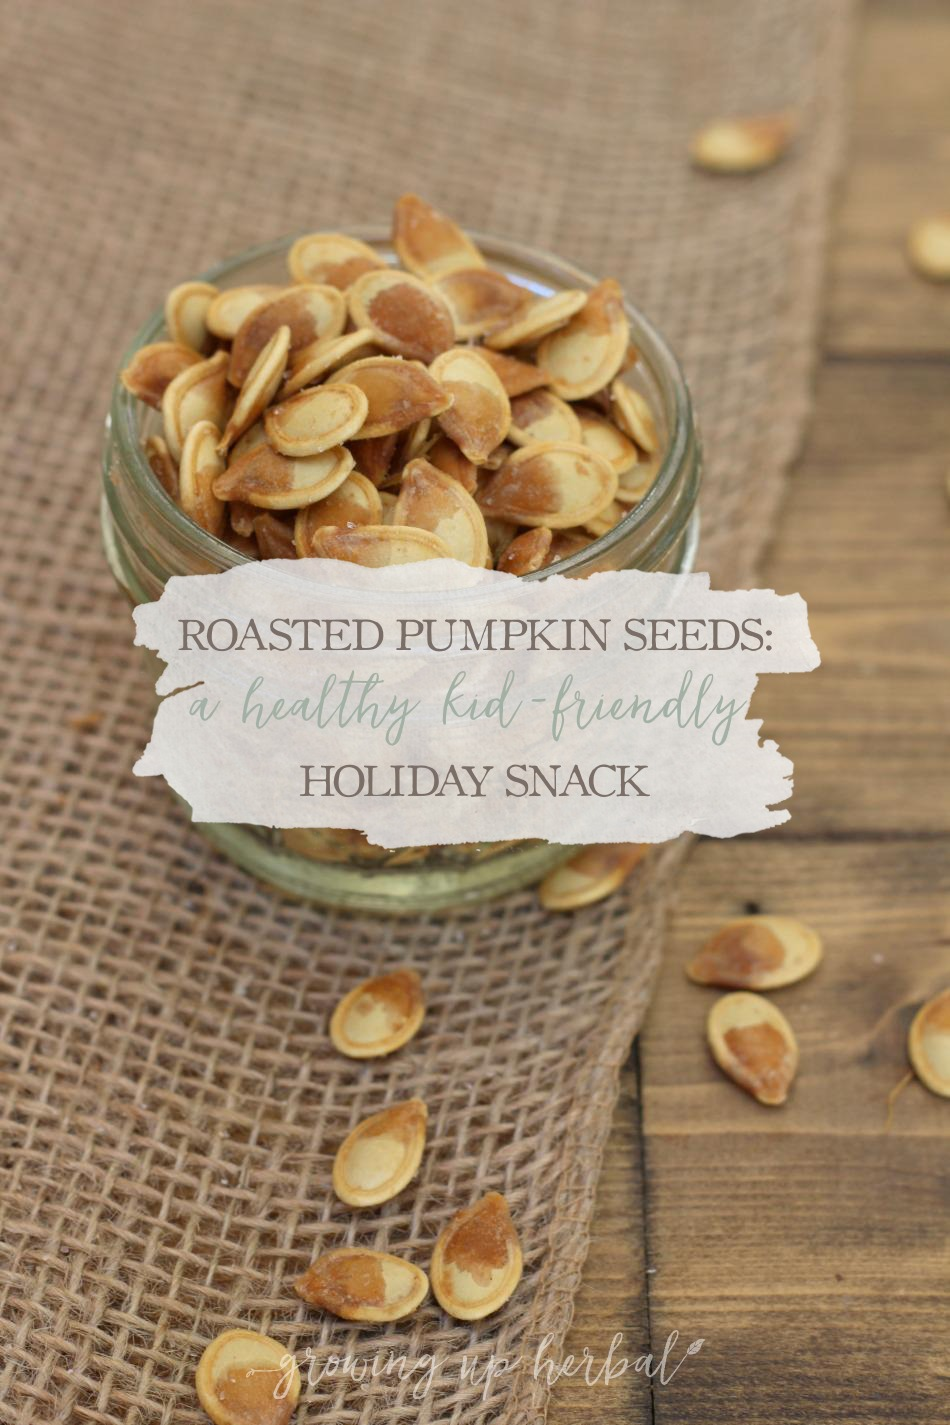 Roasted Pumpkin Seeds: A Healthy Kid-Friendly Holiday Snack